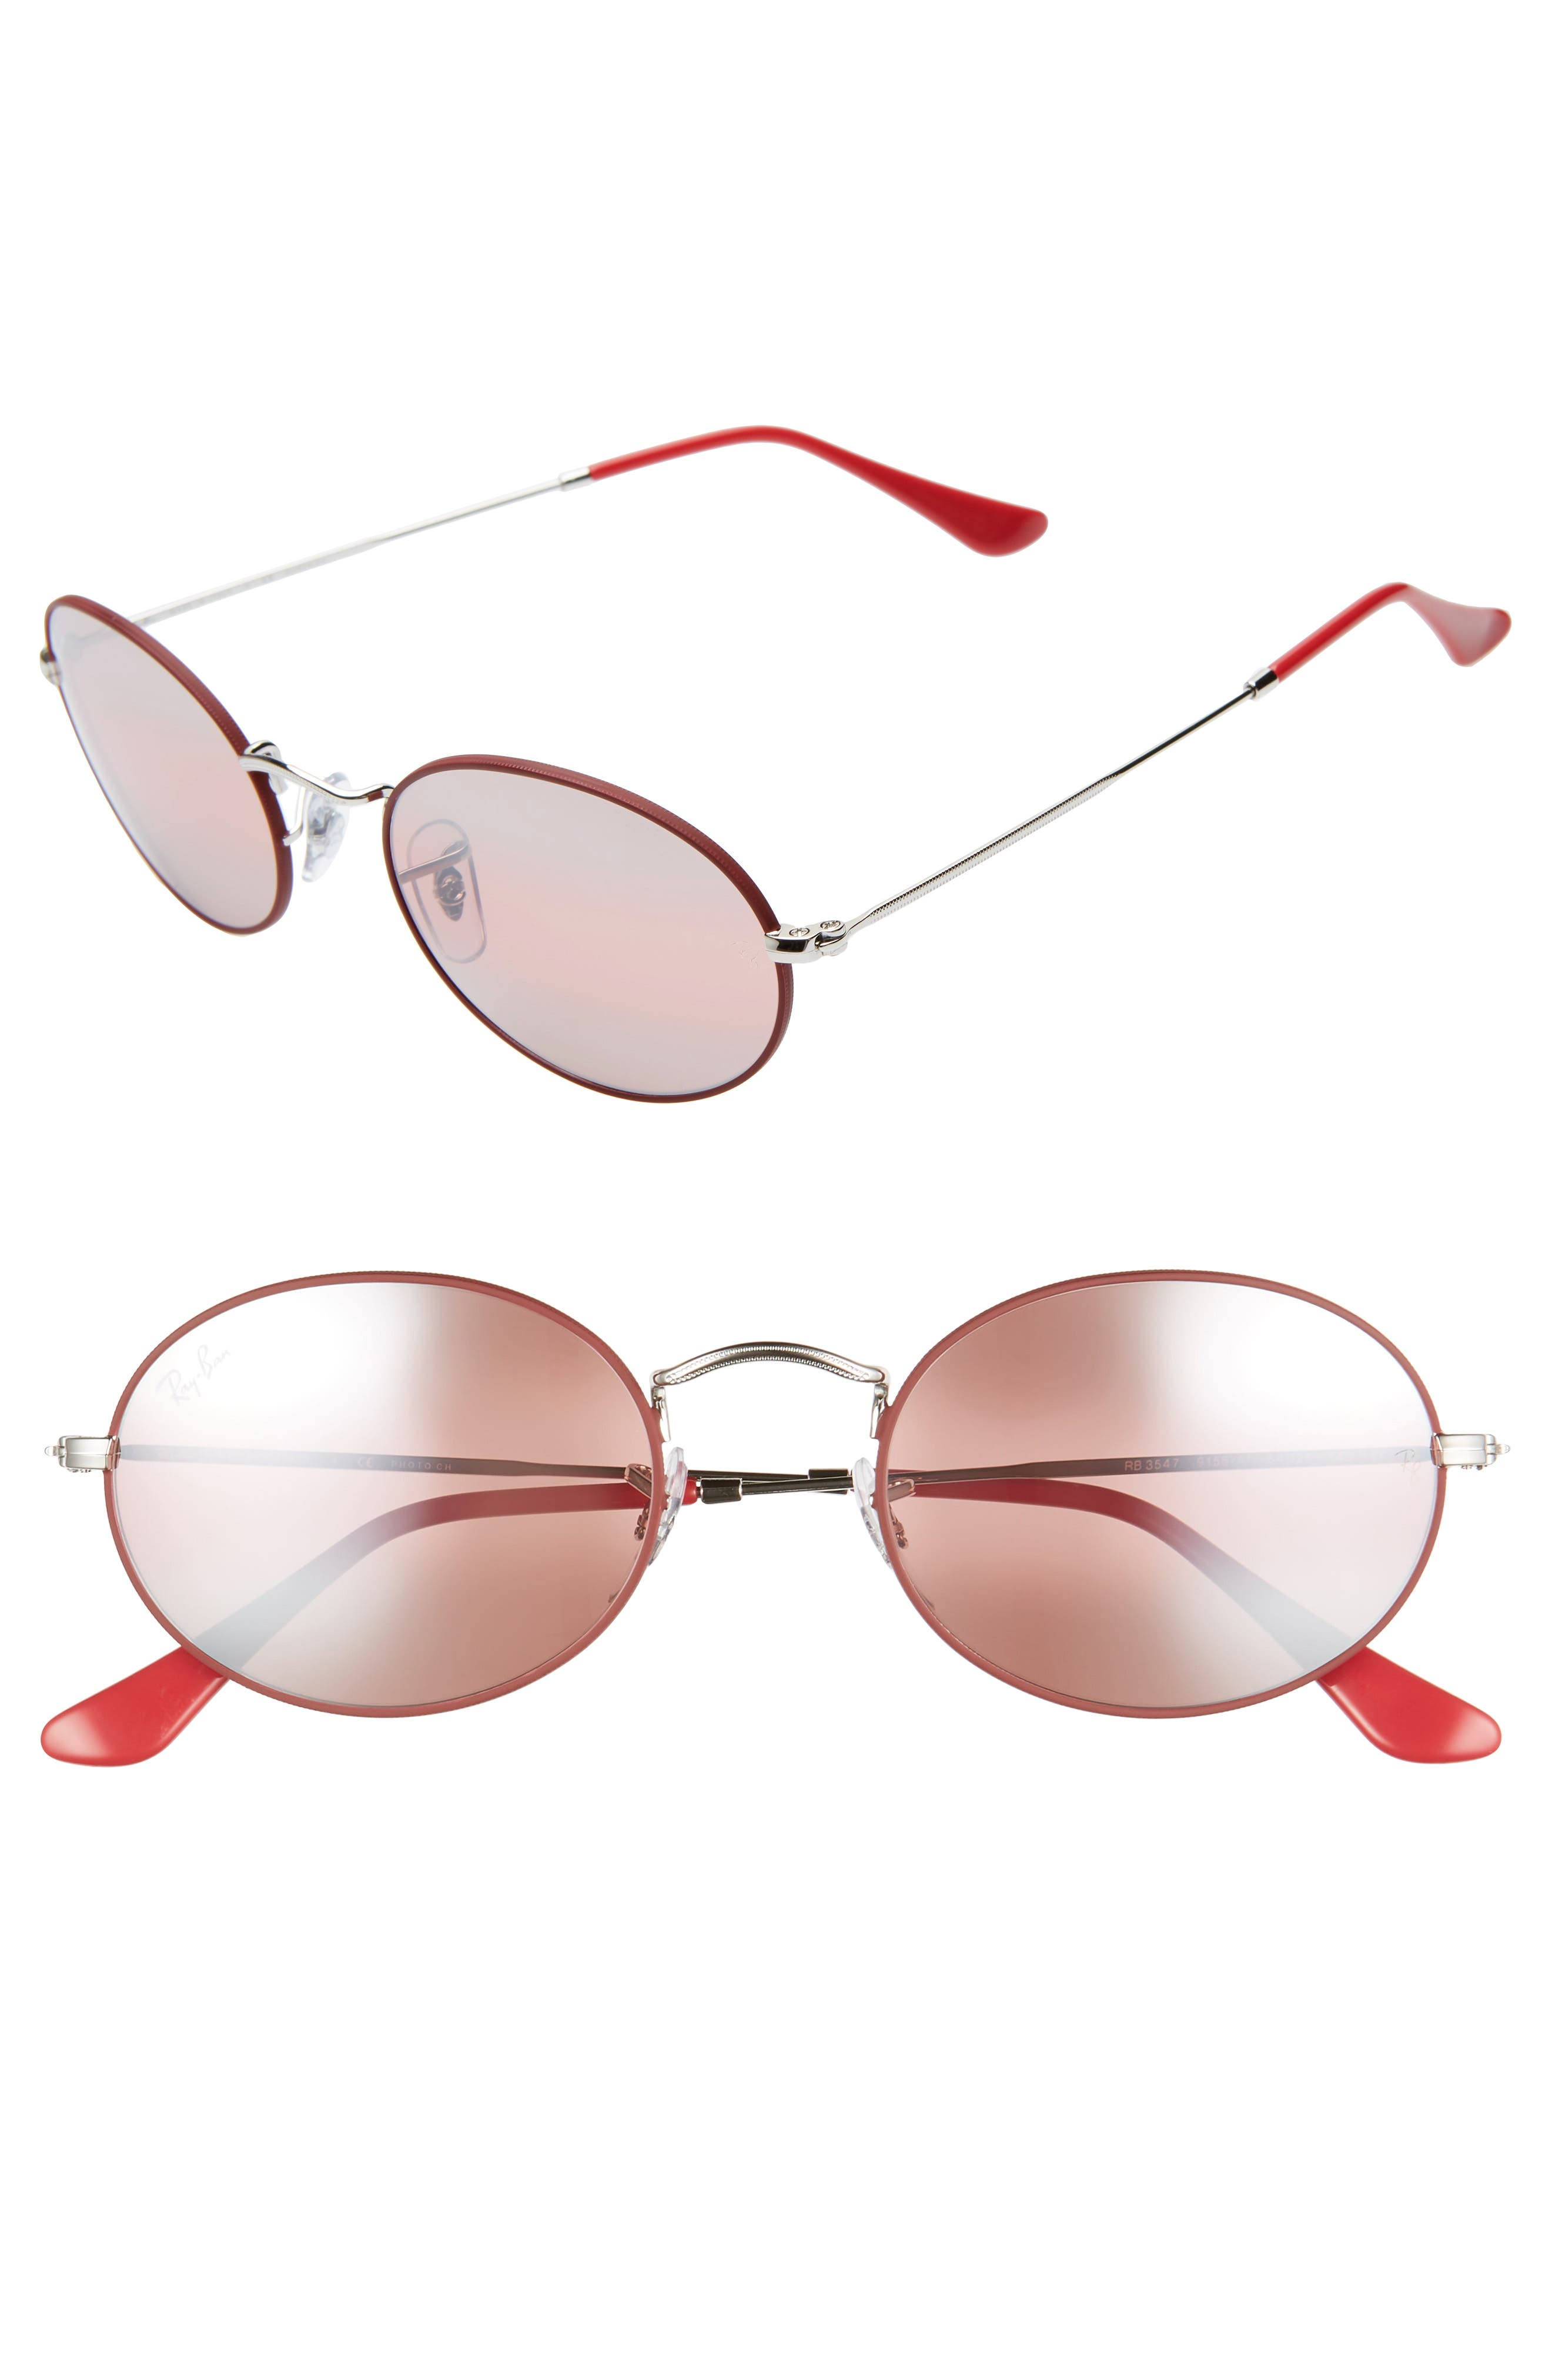 RAY-BAN, 54mm Polarized Oval Sunglasses, Main thumbnail 1, color, RED SILVER